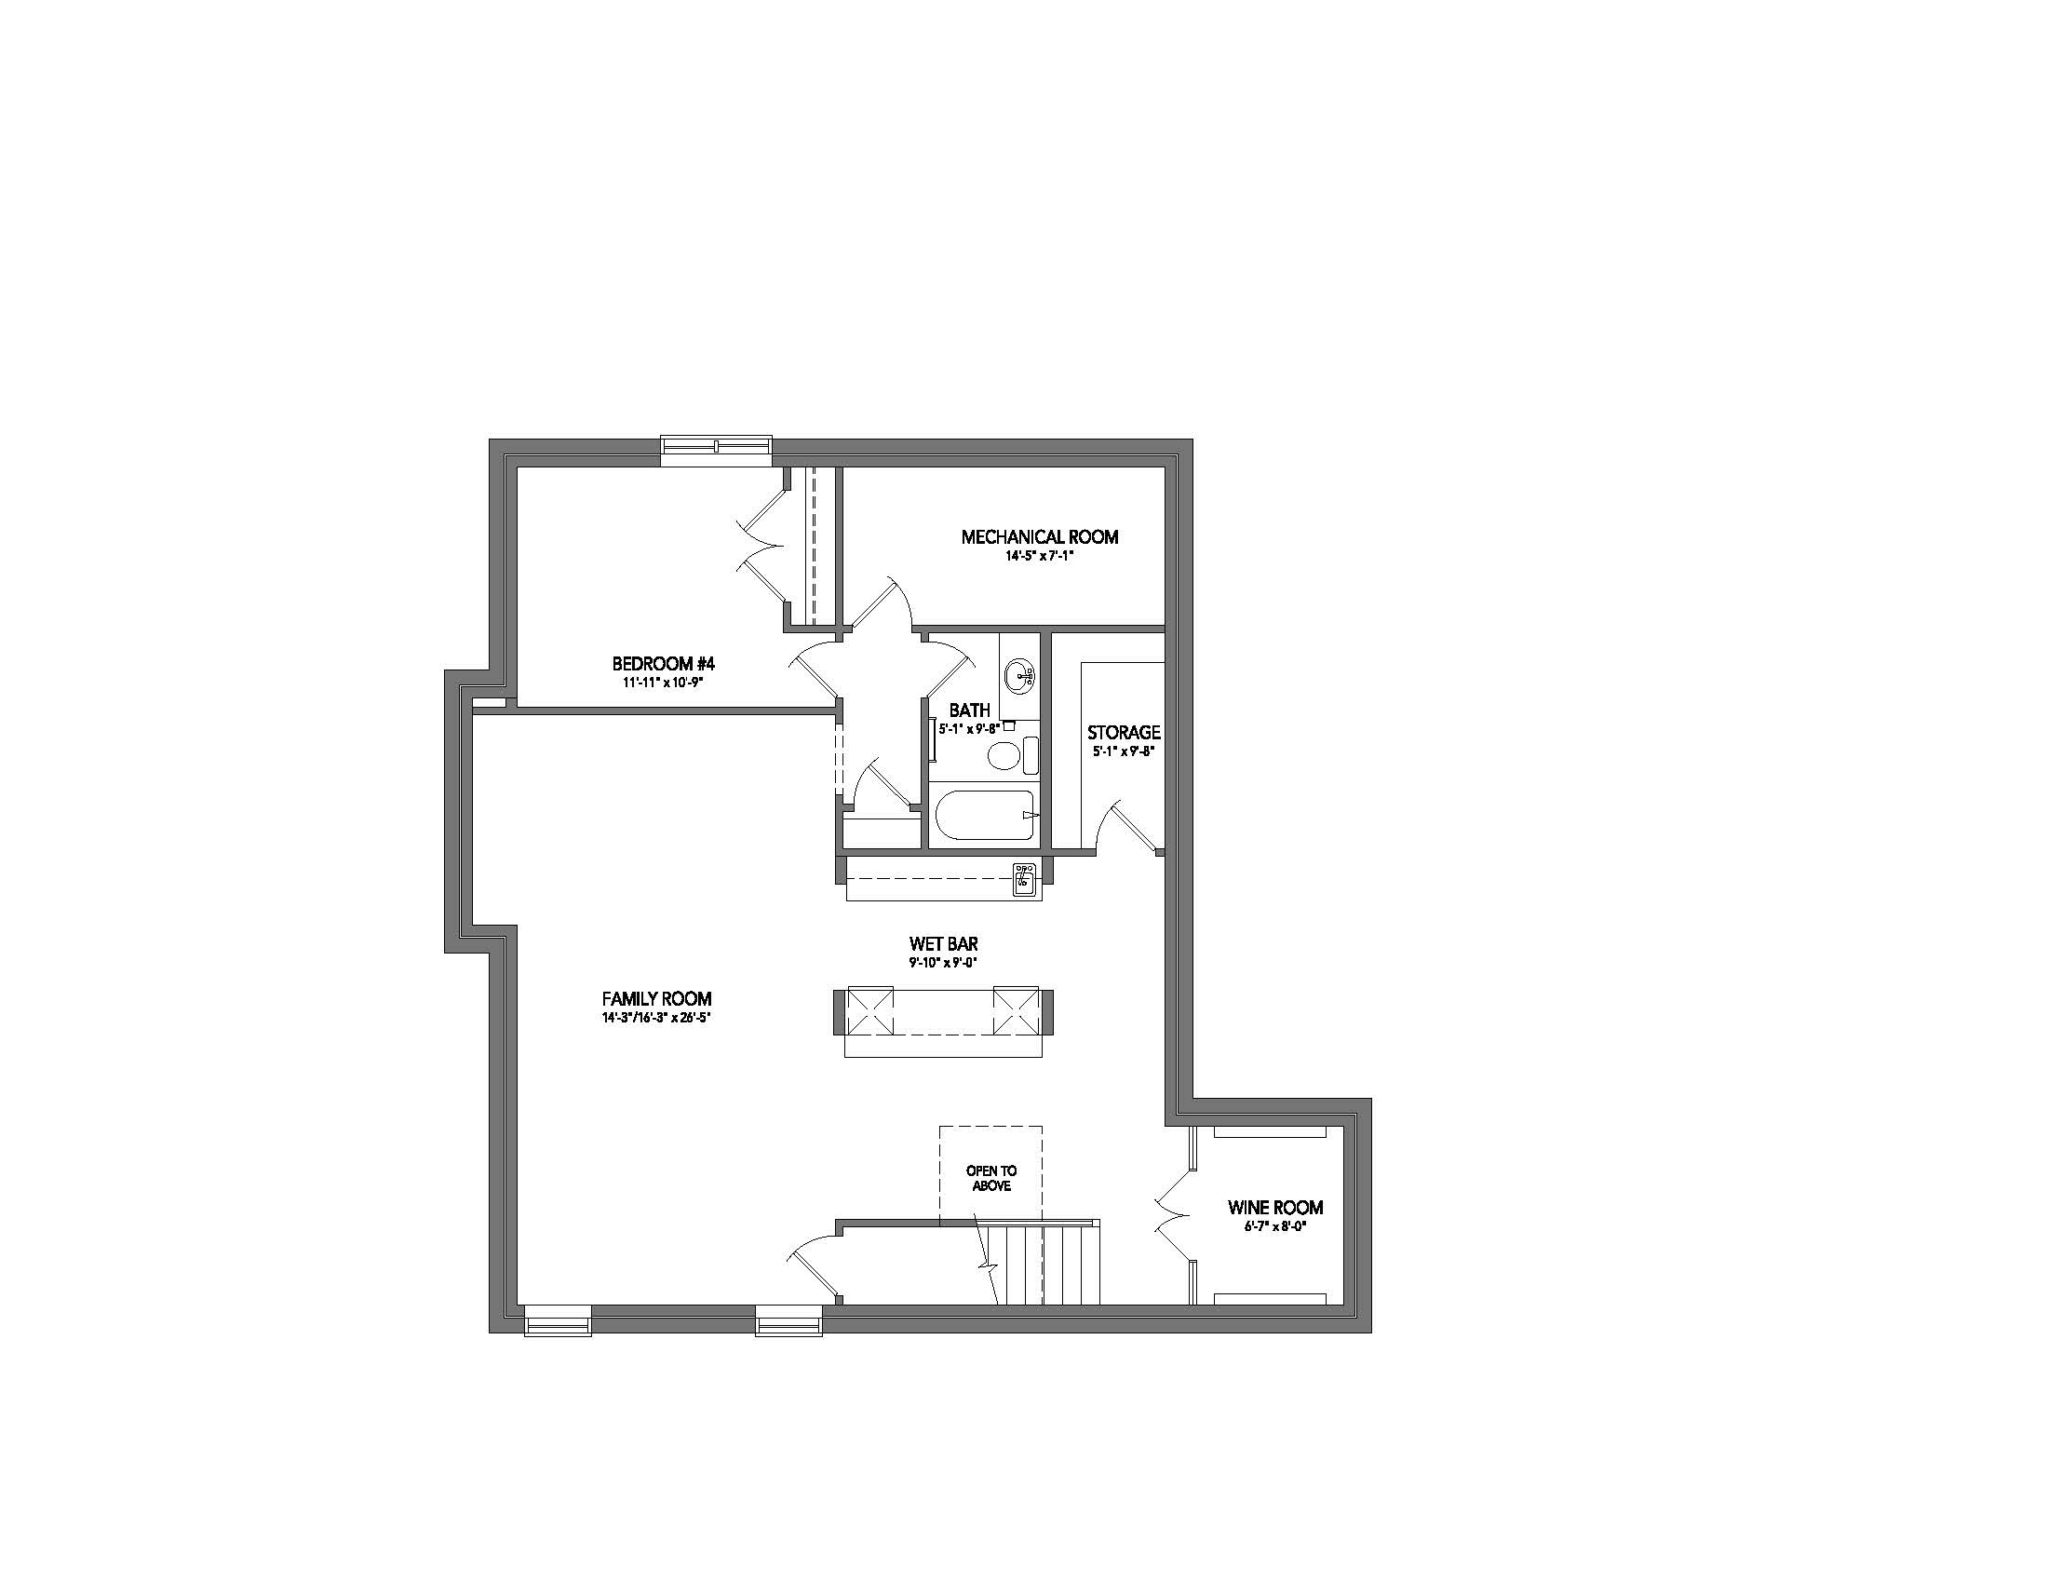 Floor Plan - Basement